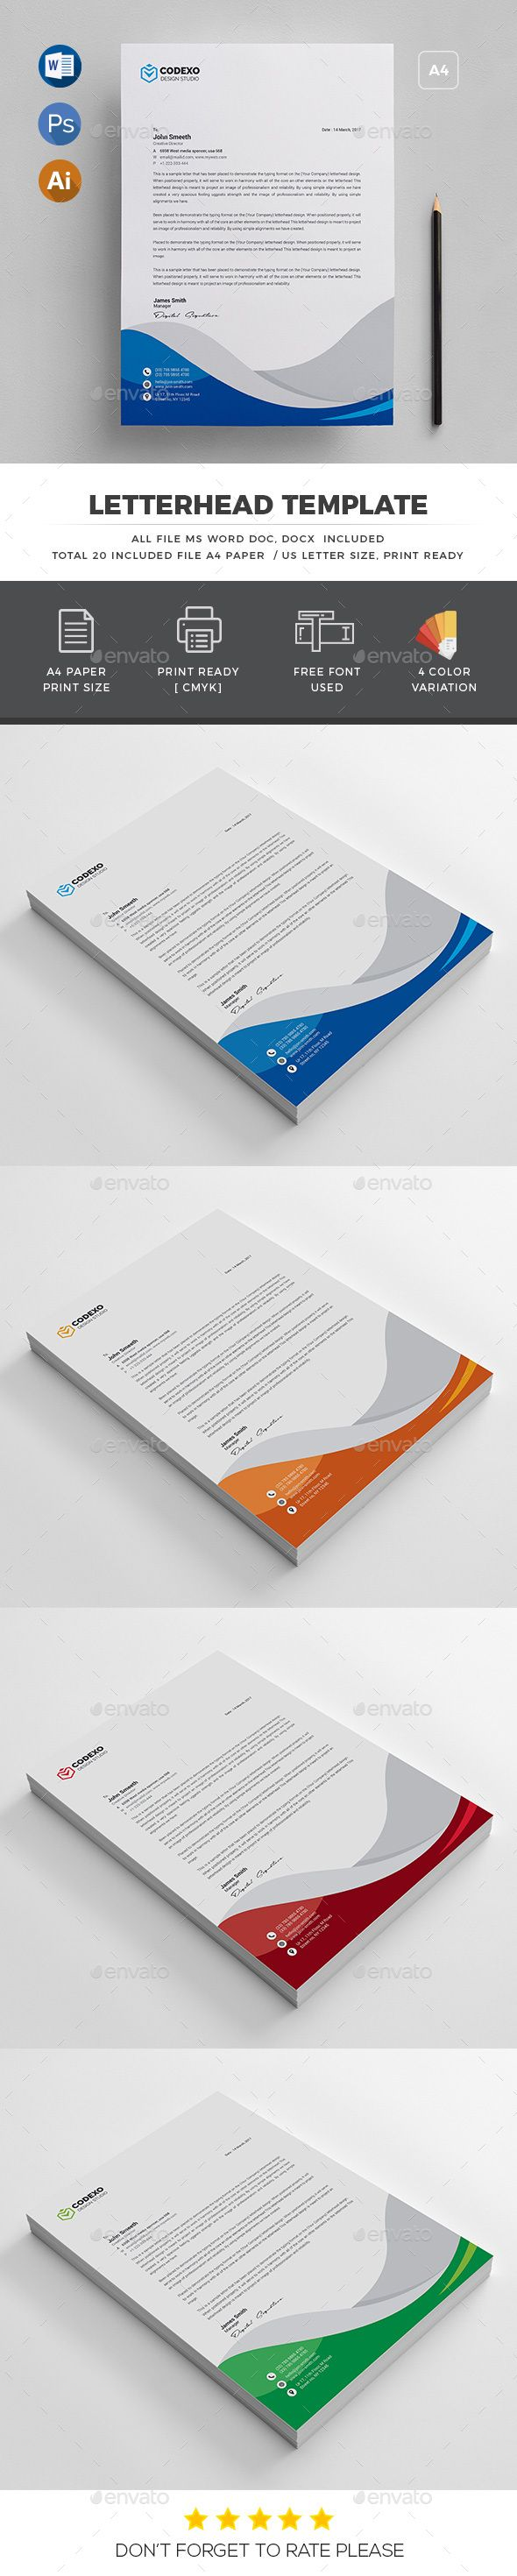 Letterhead Template PSD, Vector EPS, AI Illustrator, MS Word - A4 and US Letter